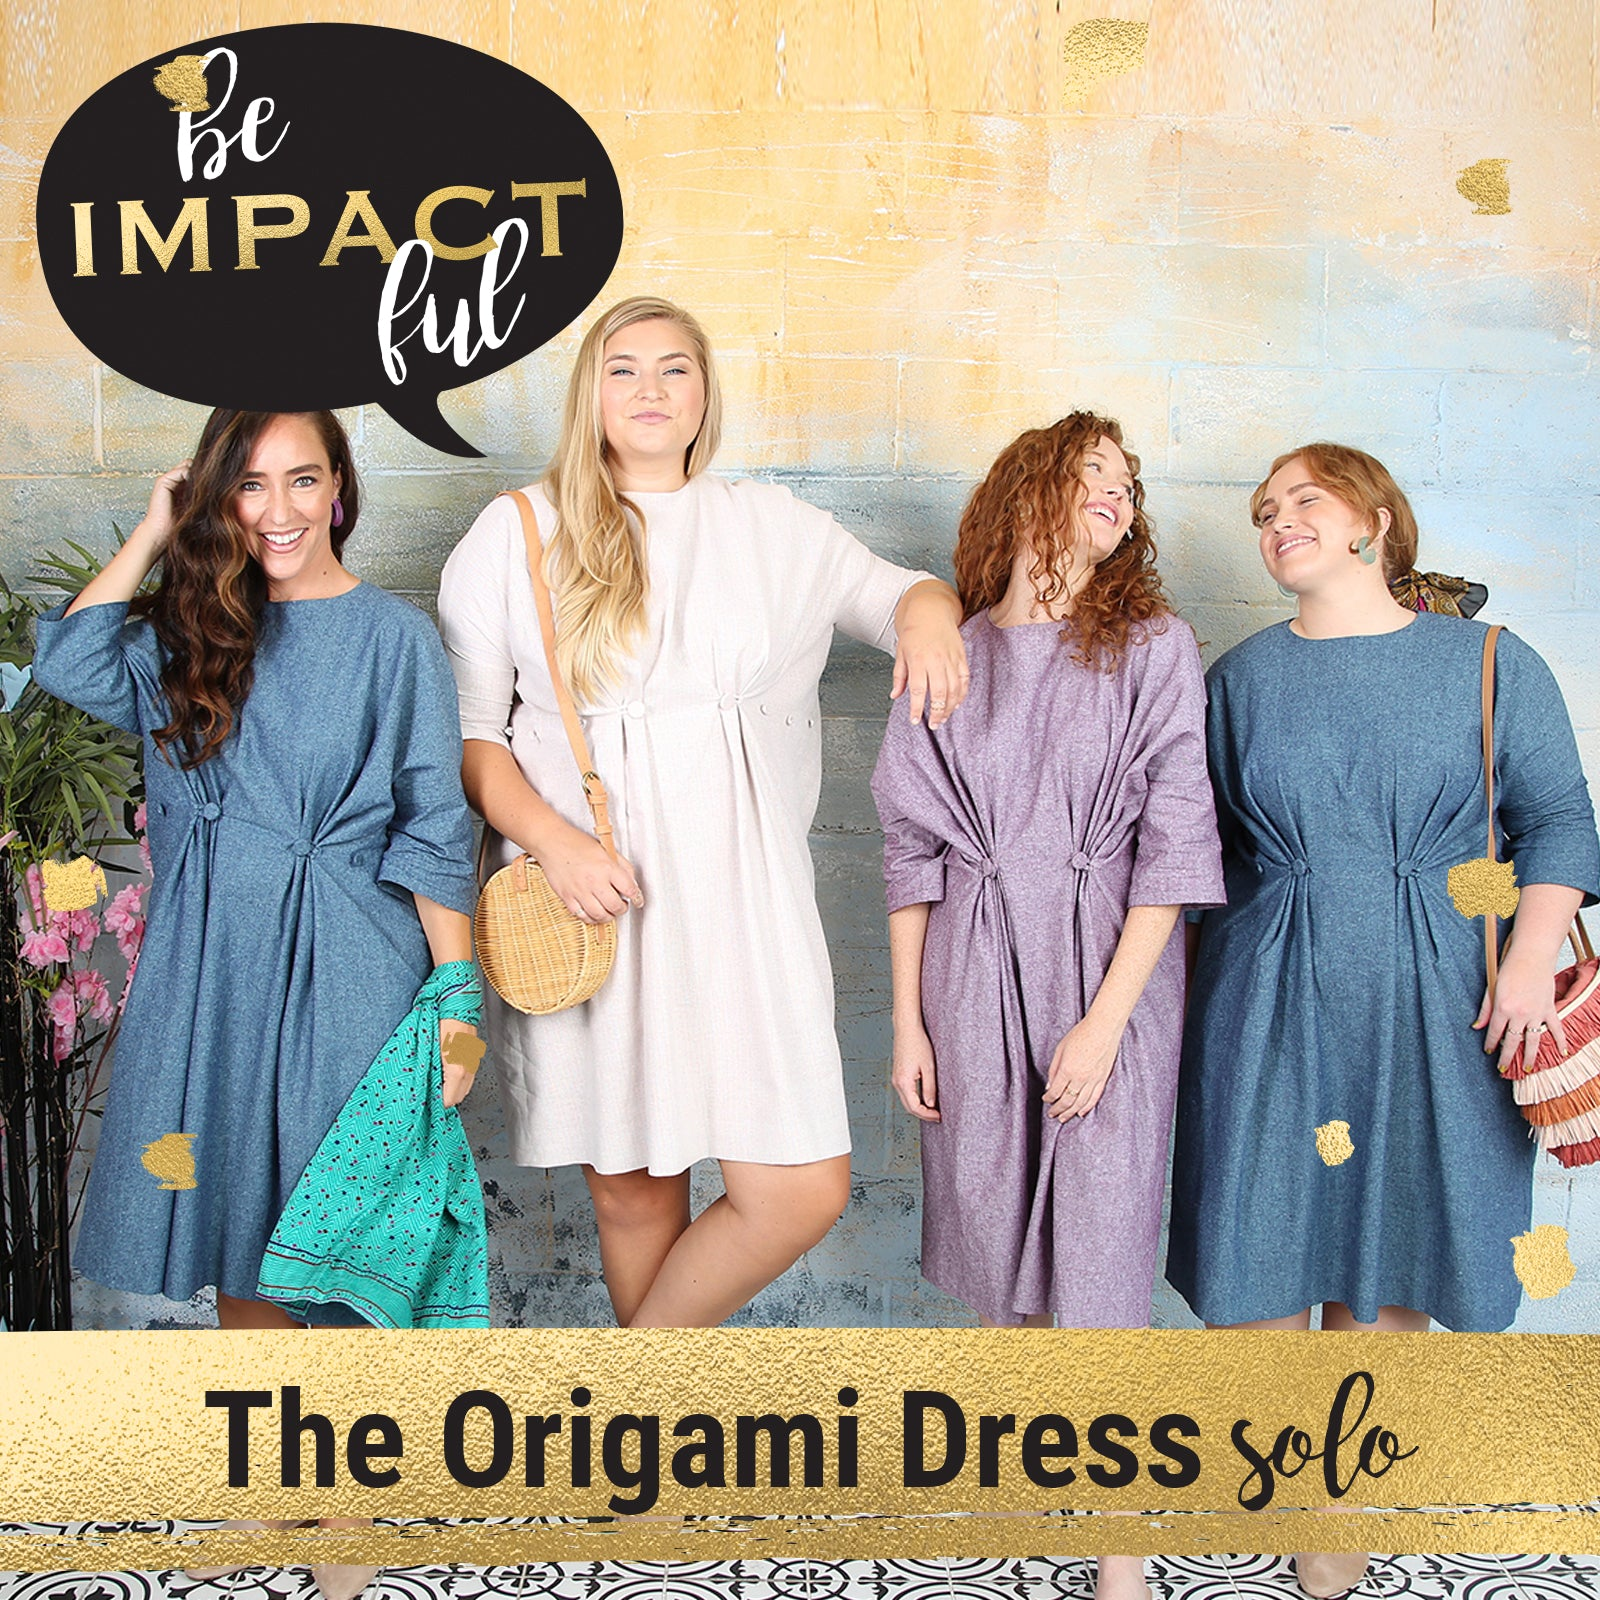 The Origami Dress- Special Solo Episode!